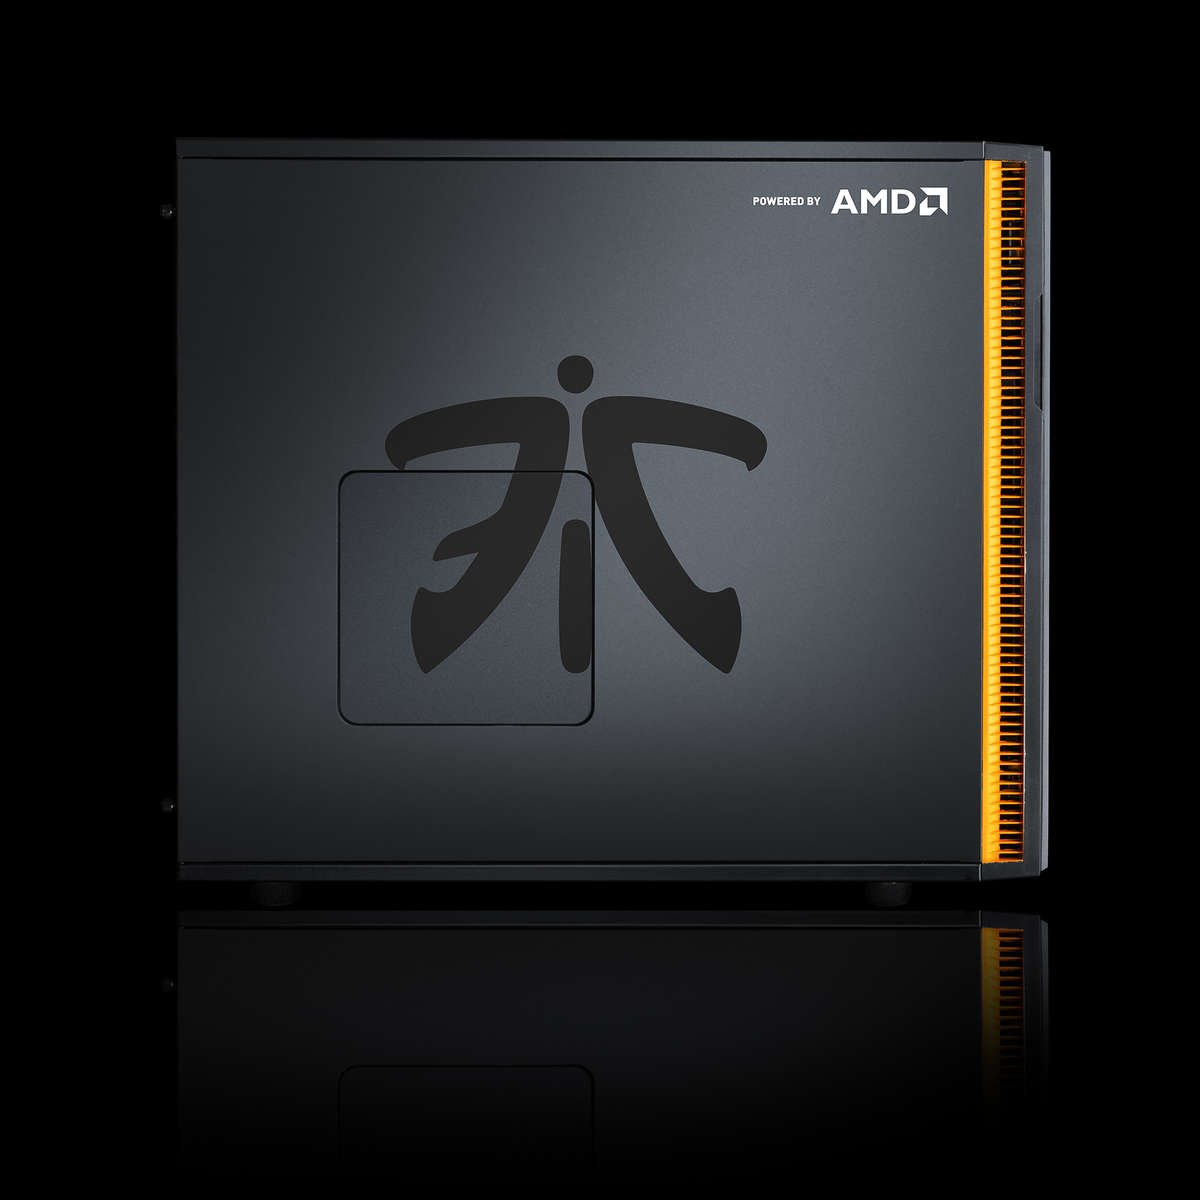 Chillblast Fnatic Official Ultimate Ryzen Gaming PC